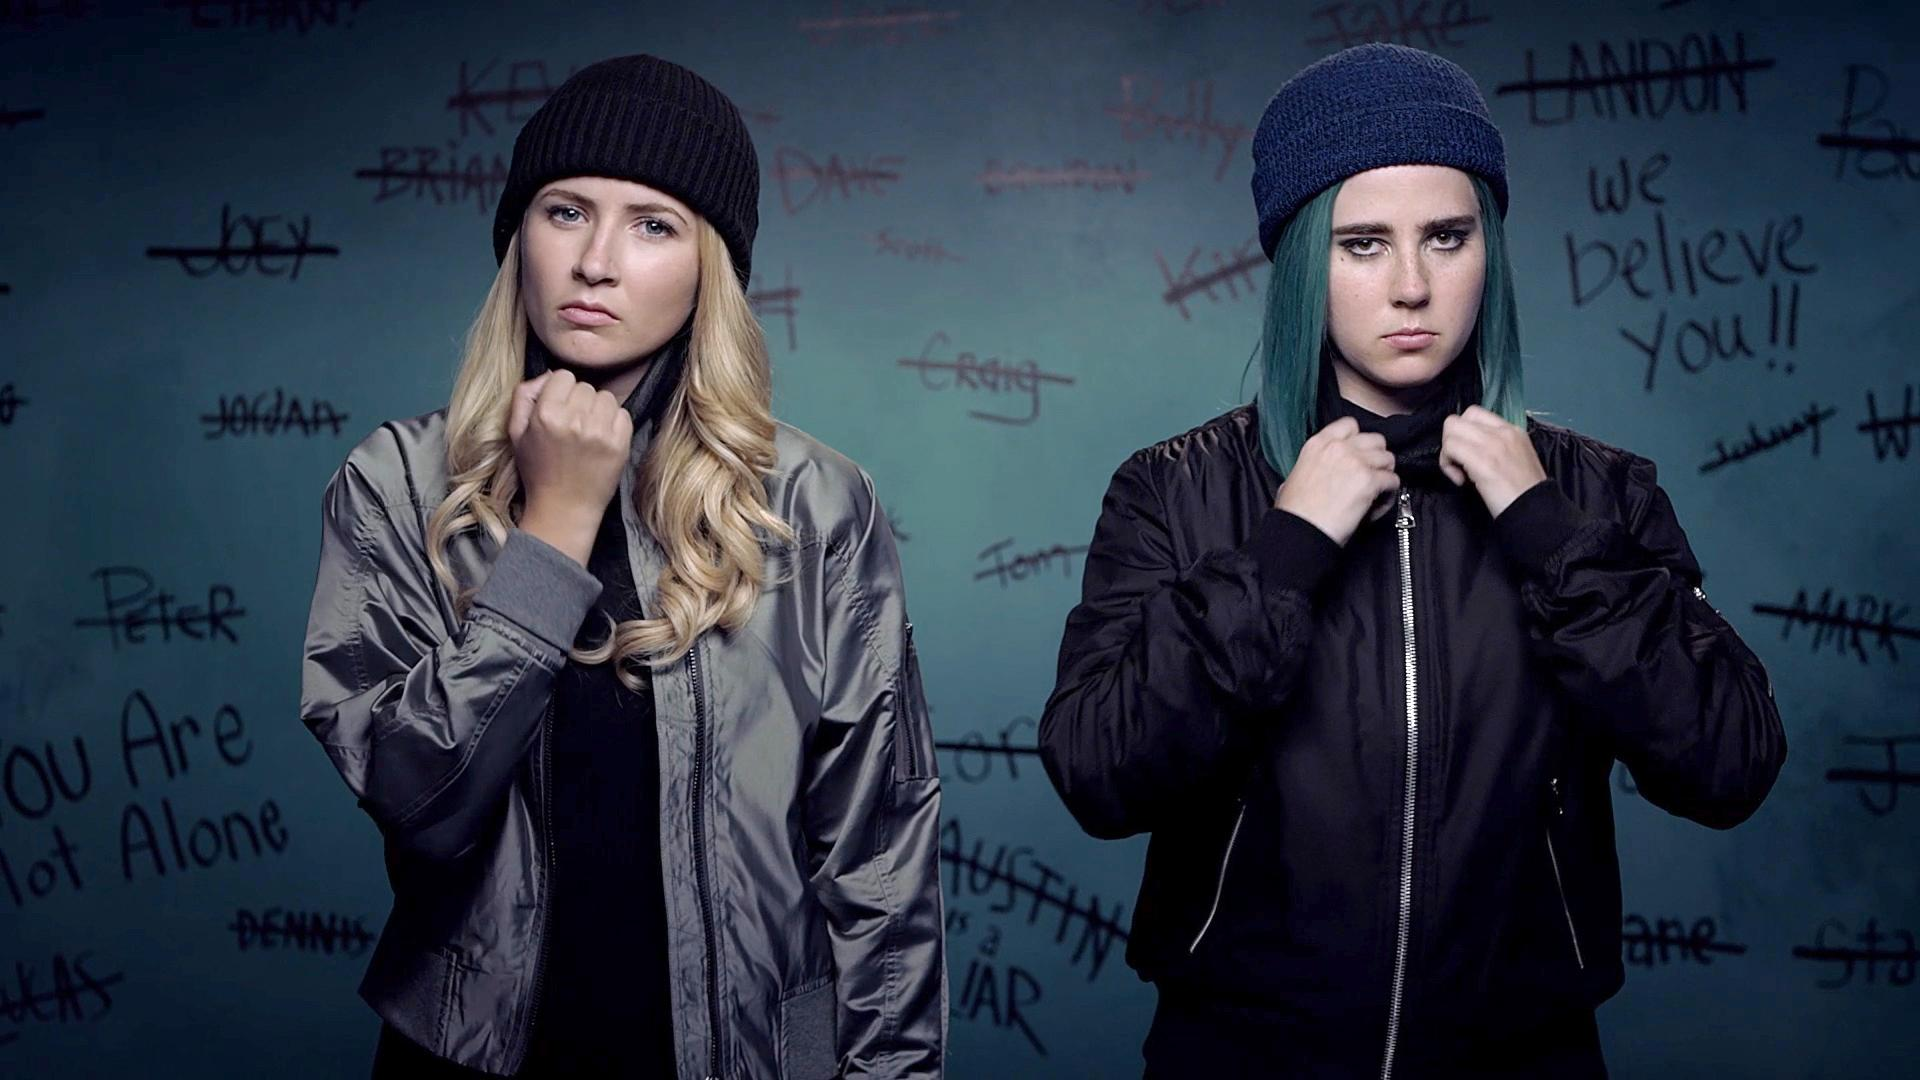 Two girls in beanies stand next to each other